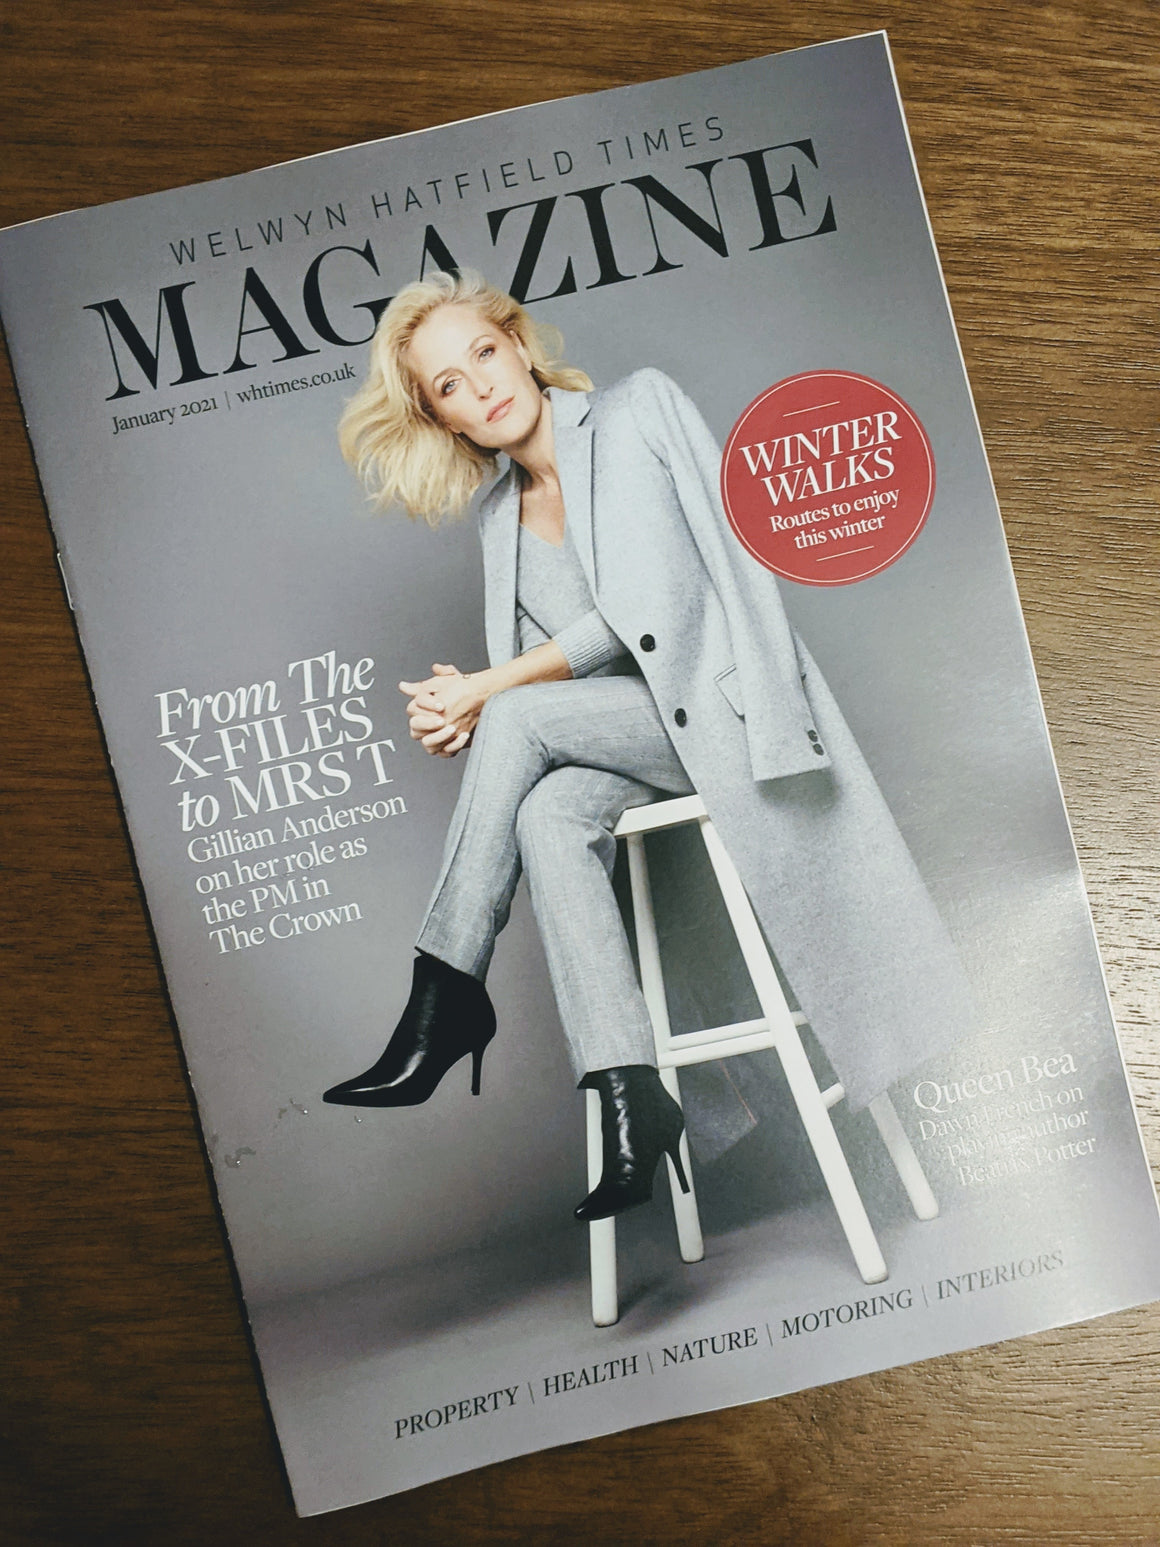 Welwyn Hatfield Times Magazine January 2021: Gillian Anderson cover